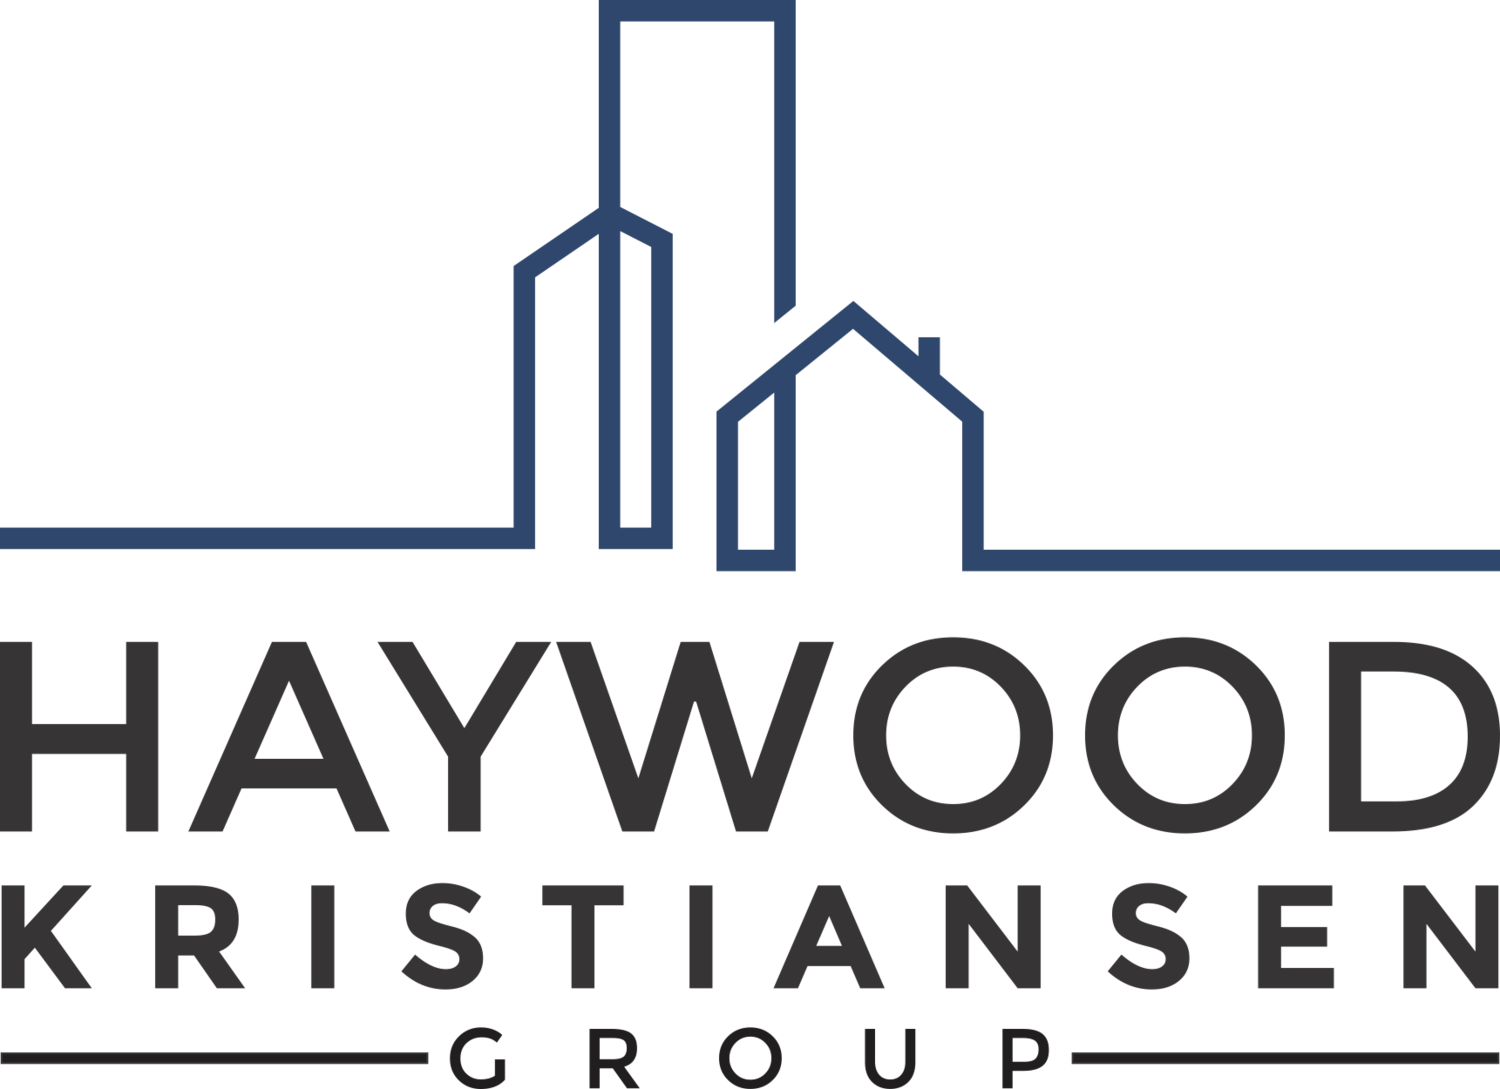 Haywood Kristiansen Group